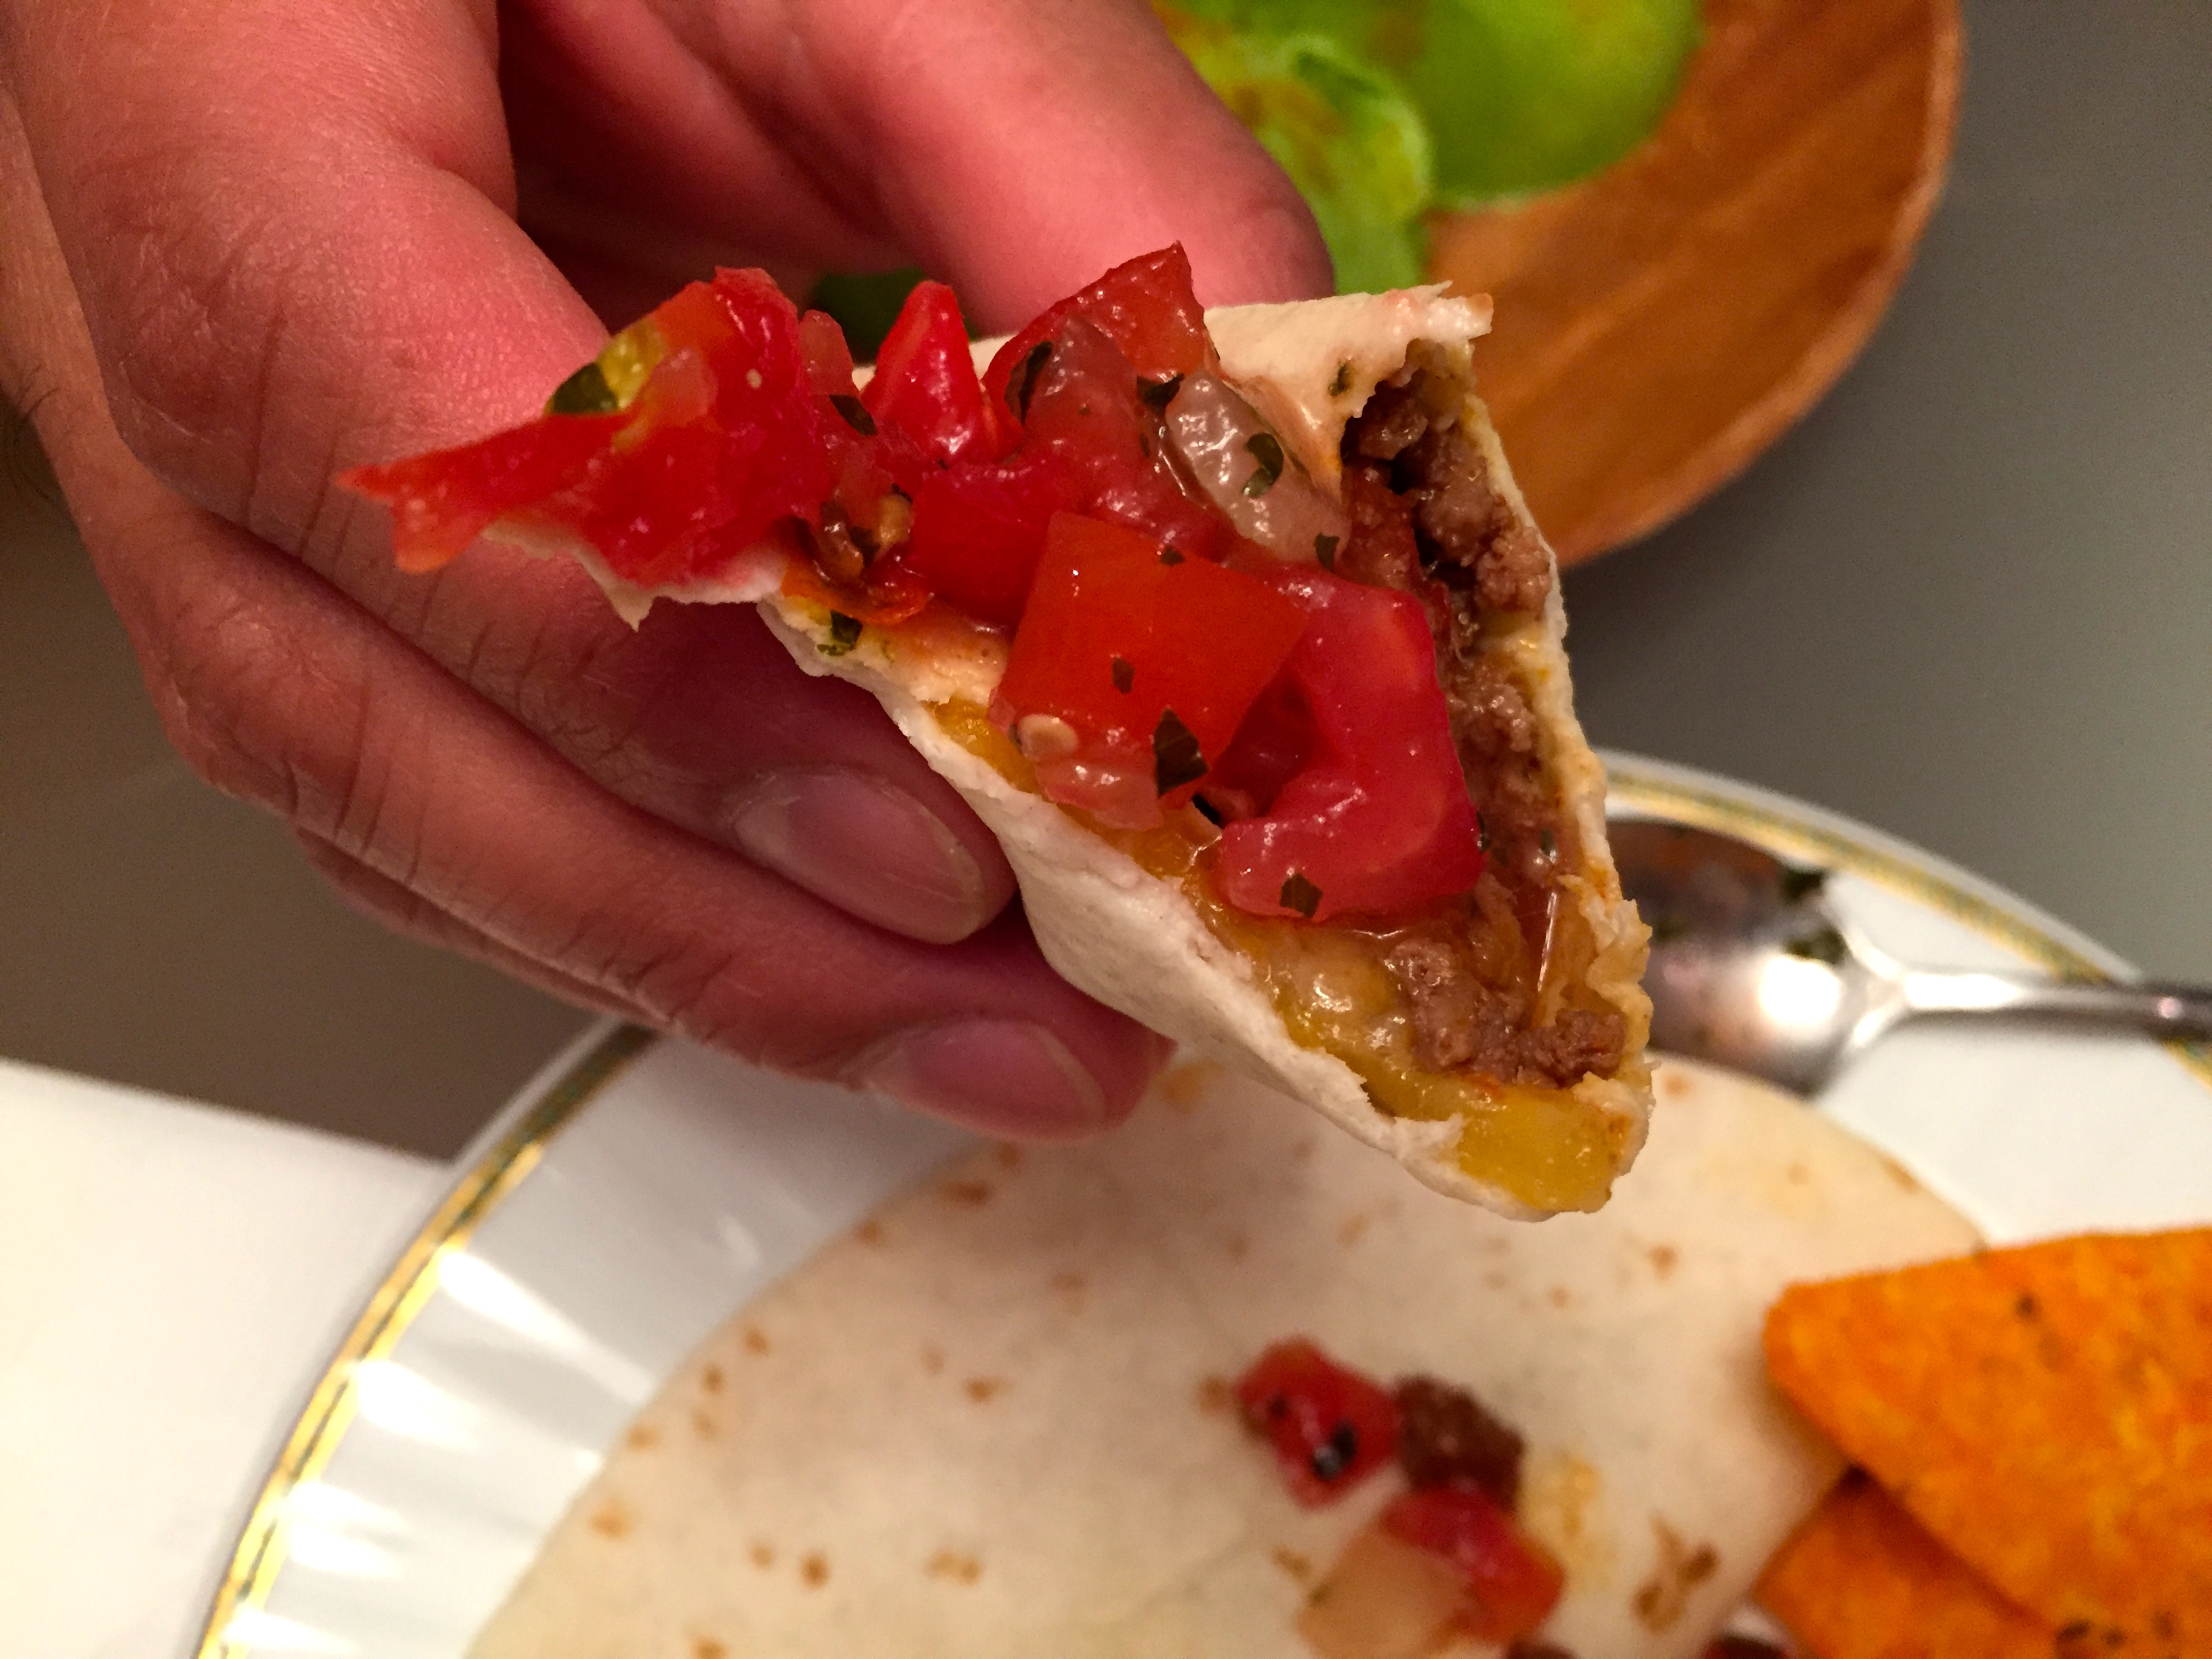 taco bell meximelts at home with food hacks ideas